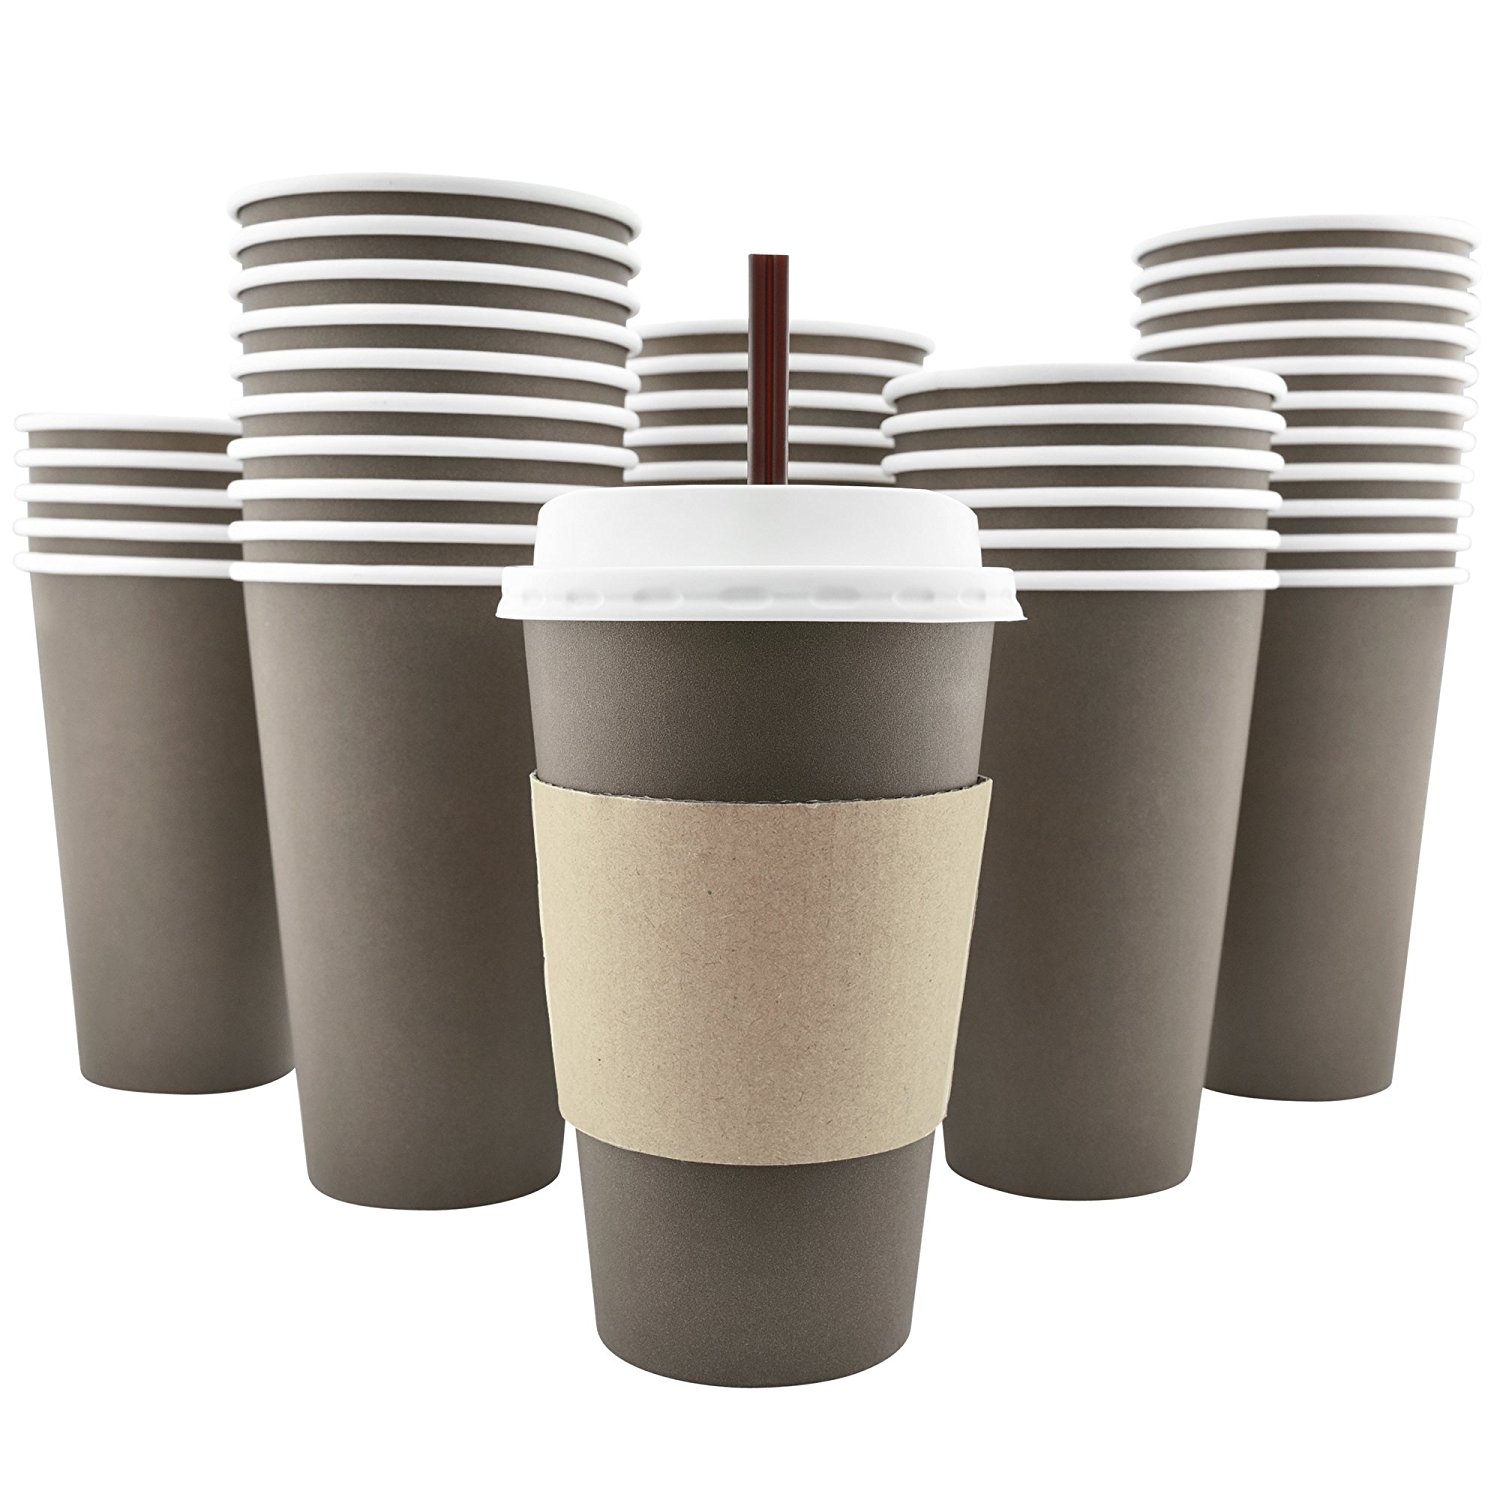 100 Pack 16 Oz [8, 12, 20 Available] Disposable Hot Paper Coffee Cups, Lids, Sleeves, Stirring Straws Mocha... by AckBrands LLC